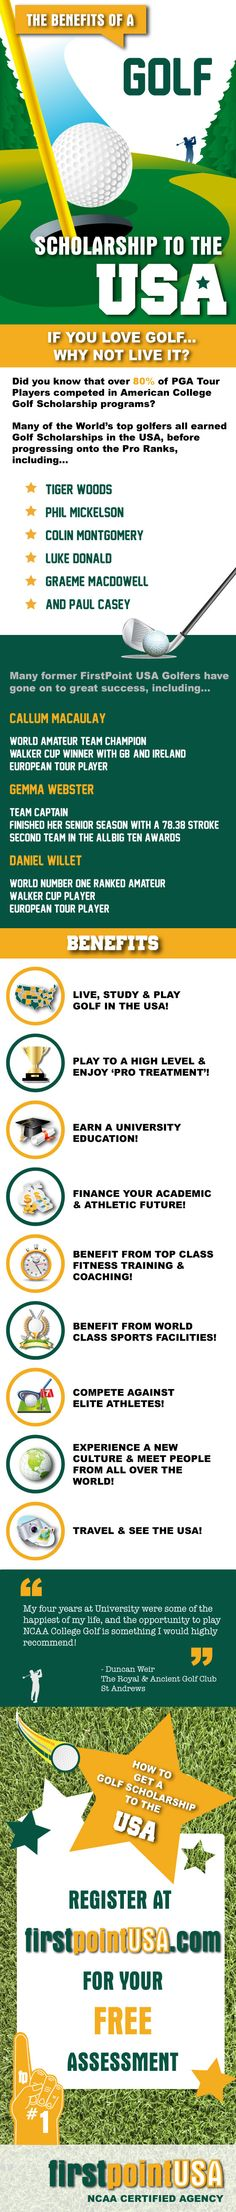 What are the benefits of a Golf Scholarship to the USA?